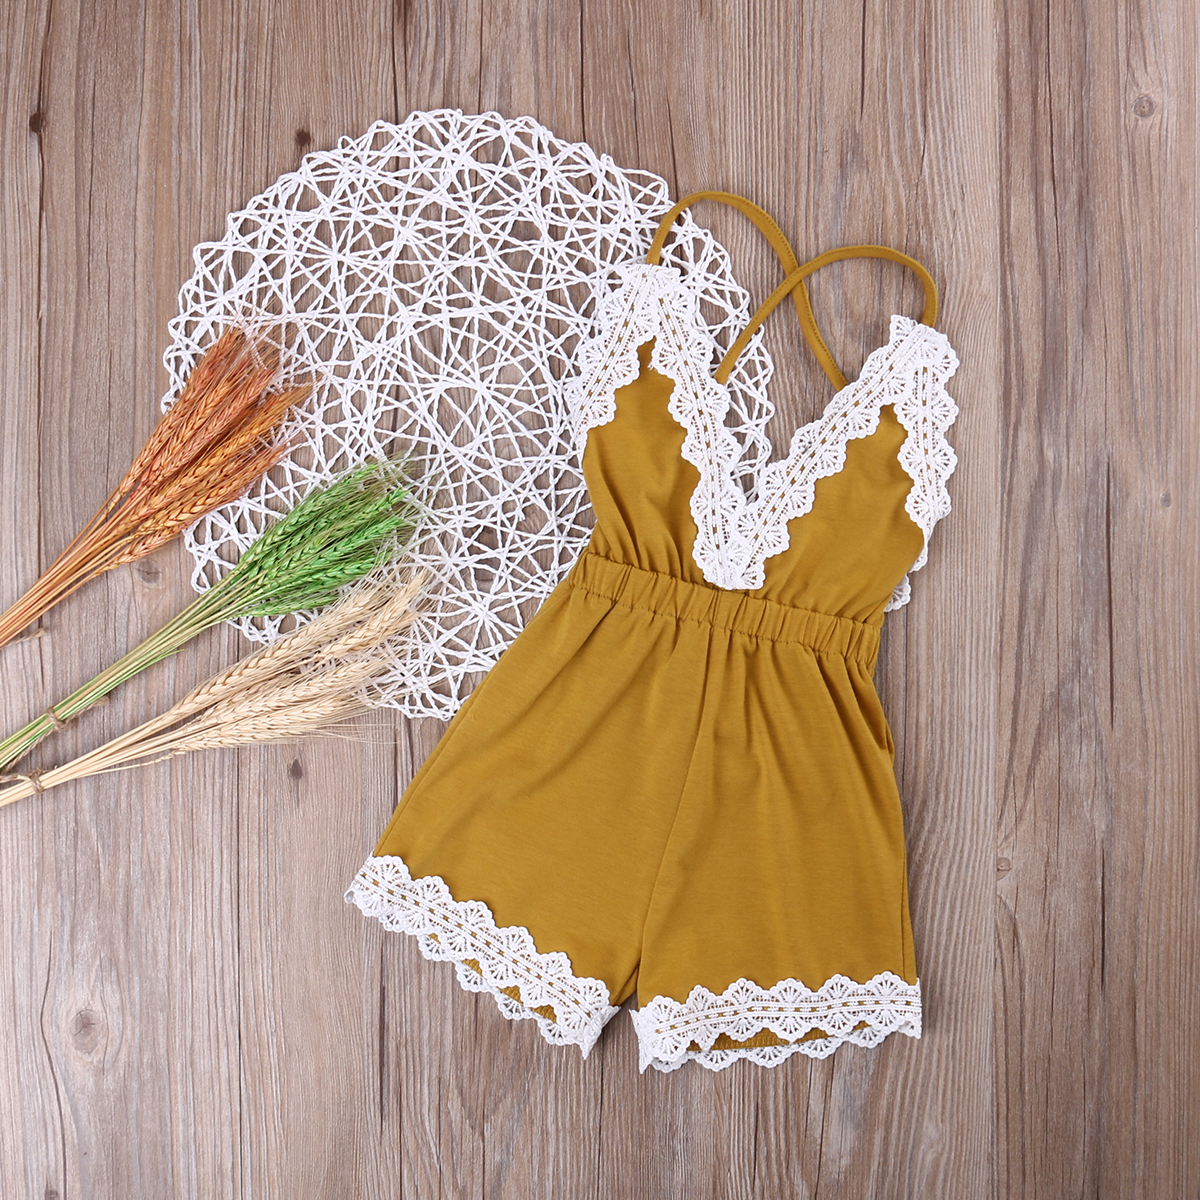 цены Adorable Newborn Baby Girls Clothing Romper Sleeveless Backless V Neck Jumpsuit Flower Outfits Clothes New